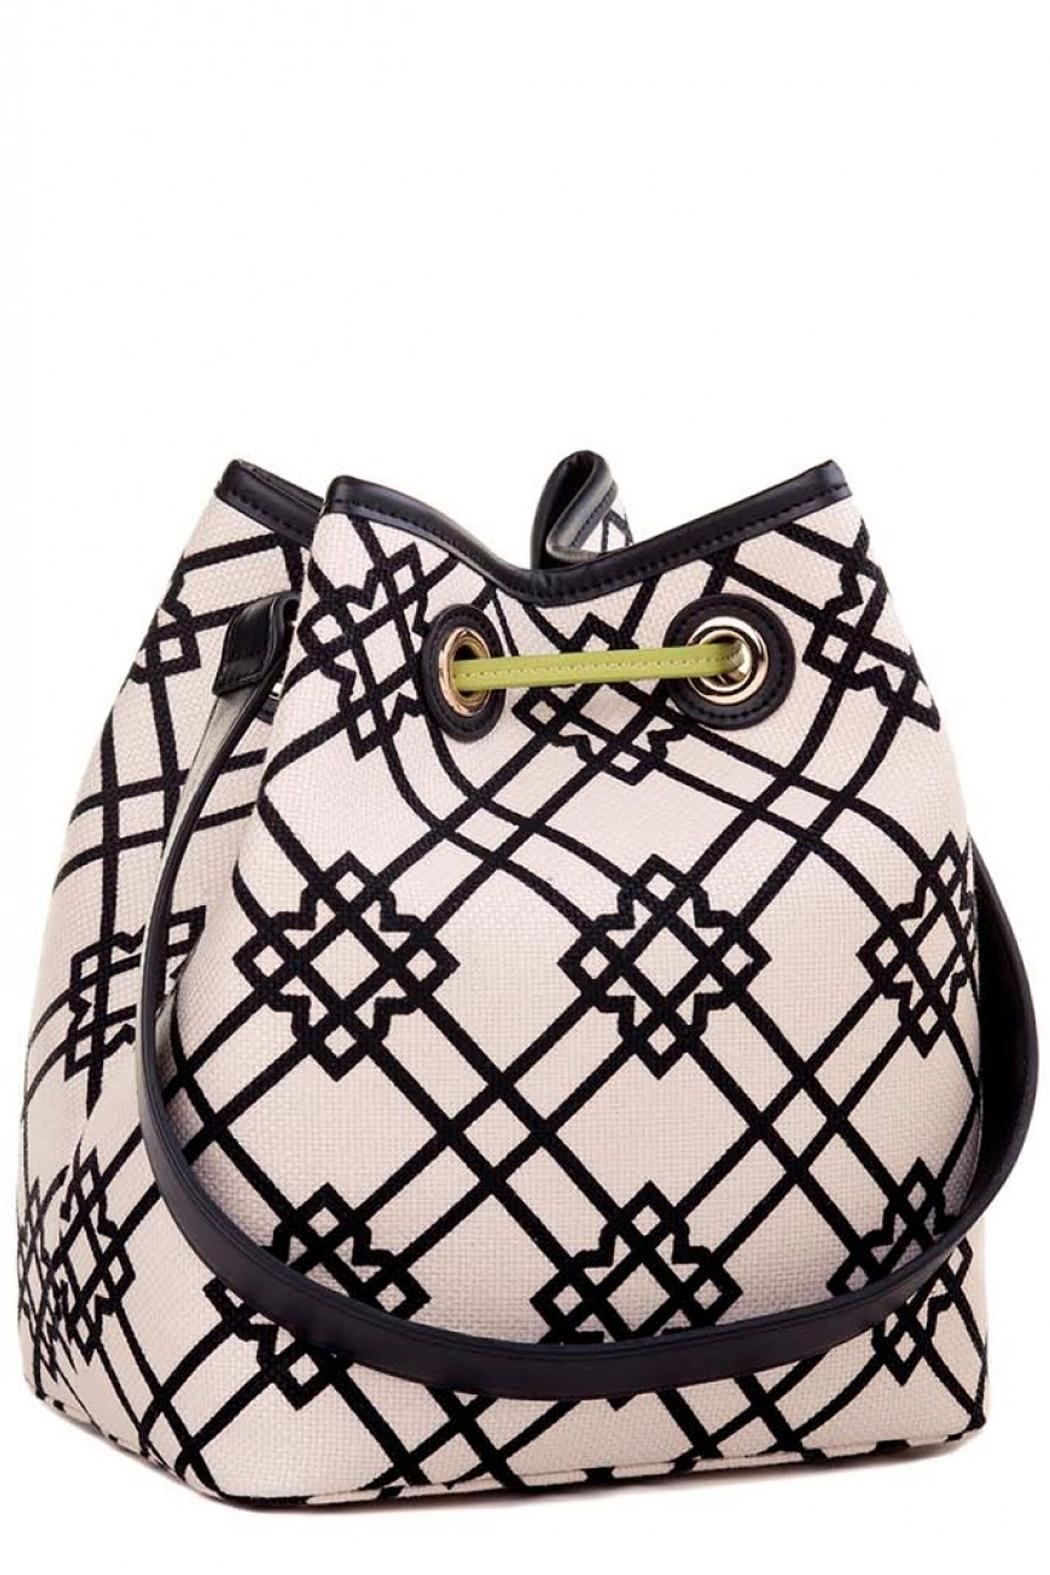 Spartina 449 Milly Drawstring Bag - Front Full Image